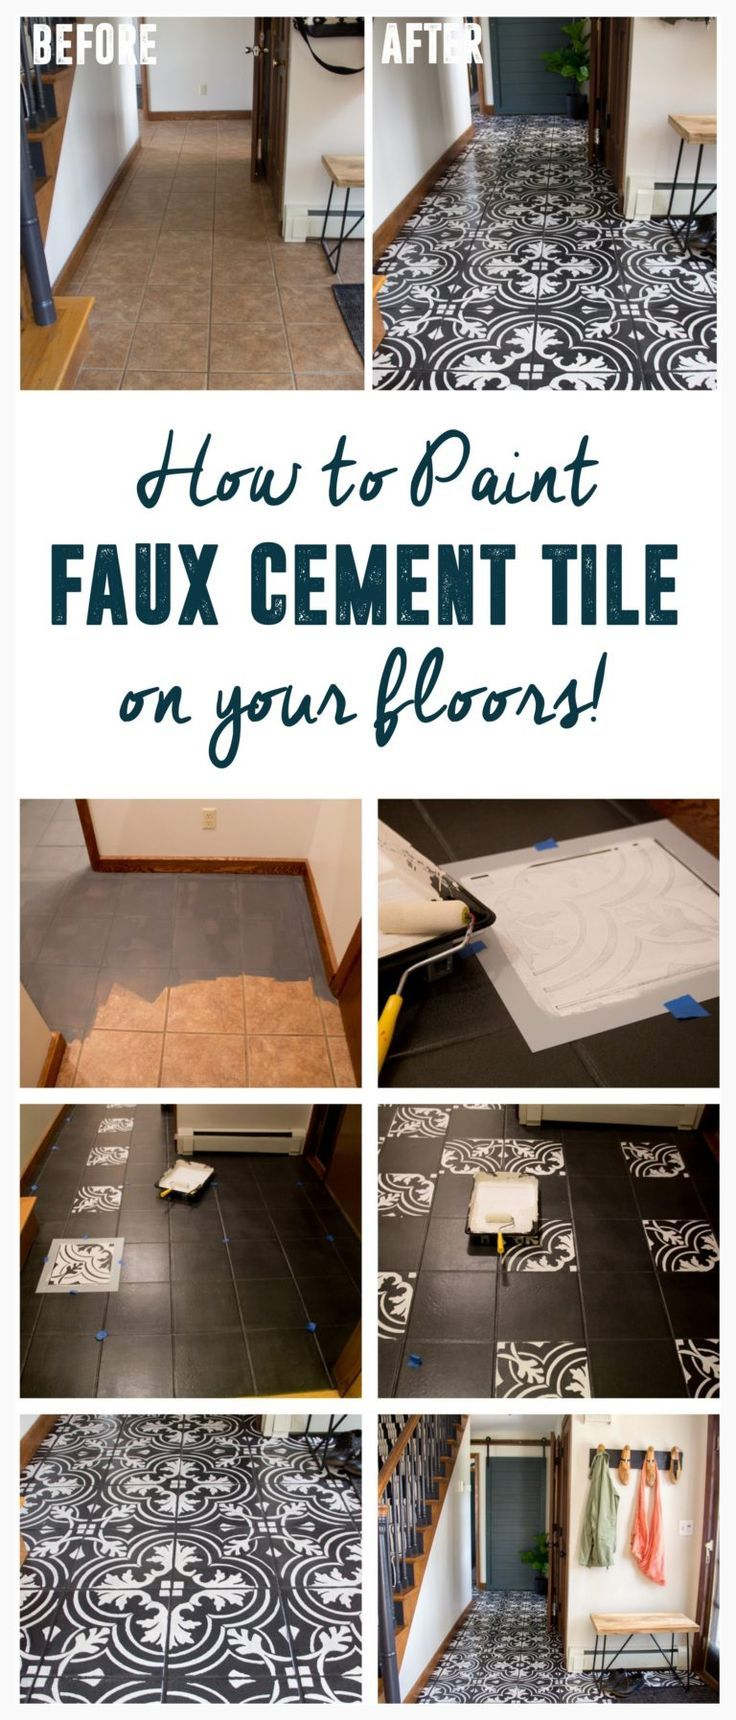 Faux cement tile painted floors painted tiles tile flooring and faux cement tile painted floors bright green door dailygadgetfo Images